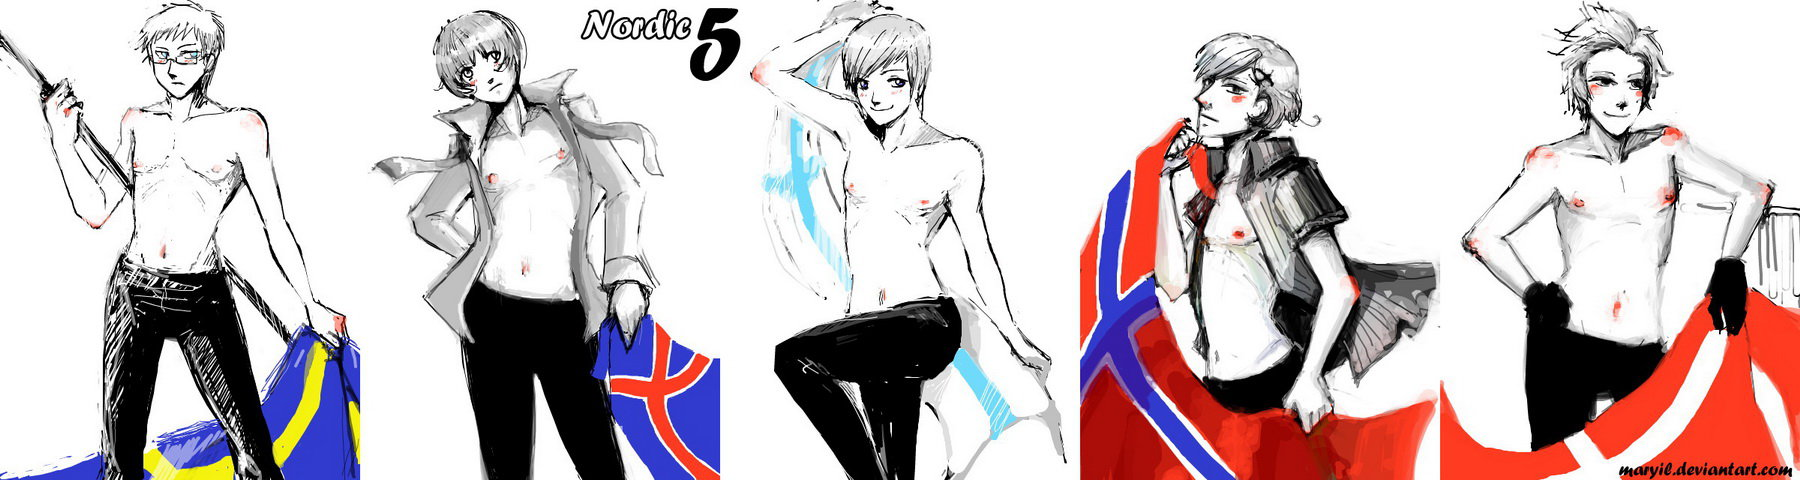 APH Nordic 5 by MaryIL 1800x480